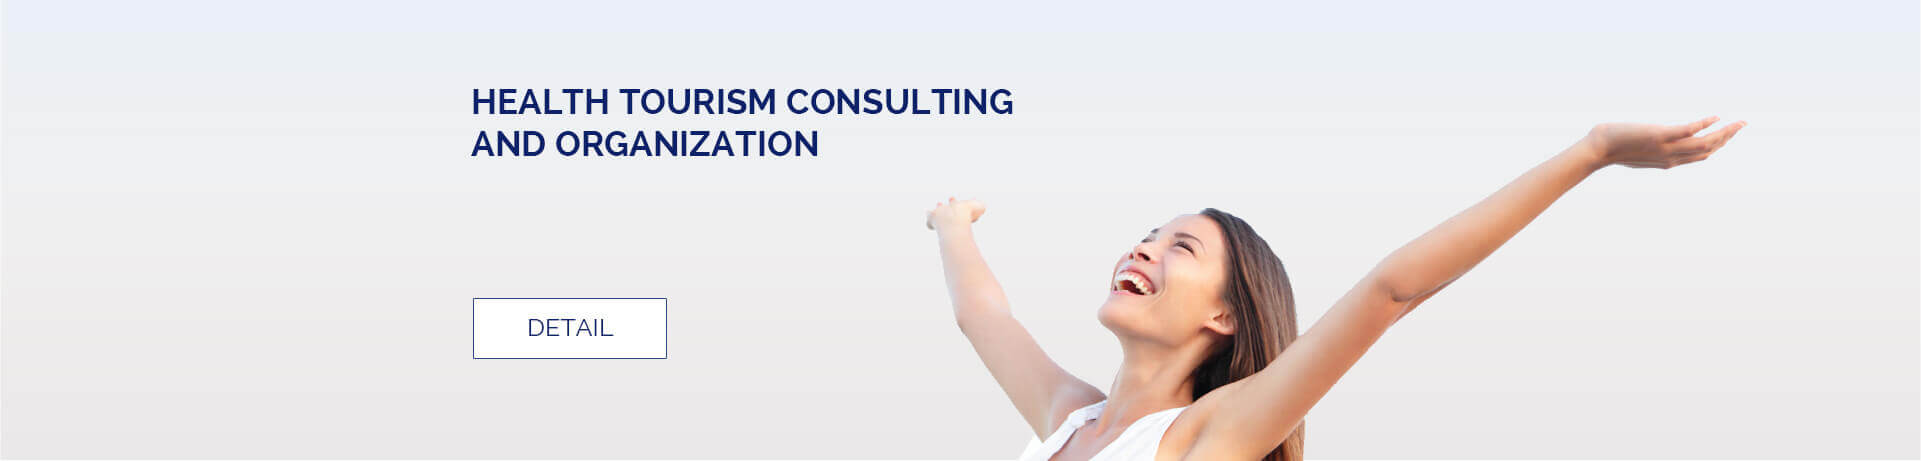 Health Tourism Consulting